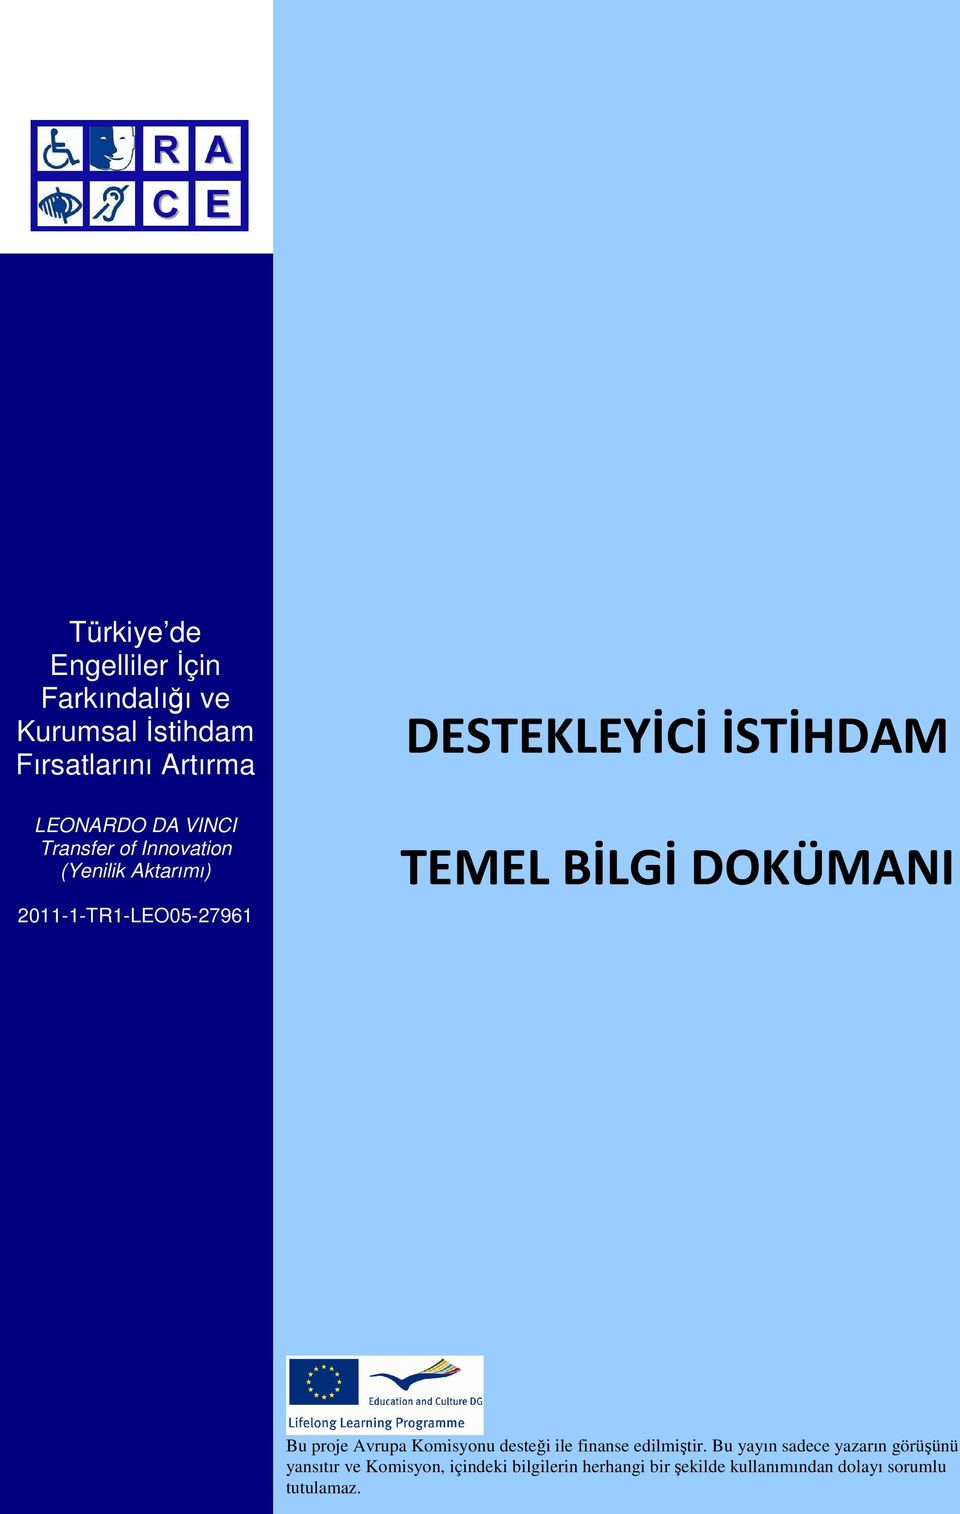 employment in practice; some examples Change management ; how to start supported employment Situation in Turkey Situation in Italy Glossary Literature Bu proje